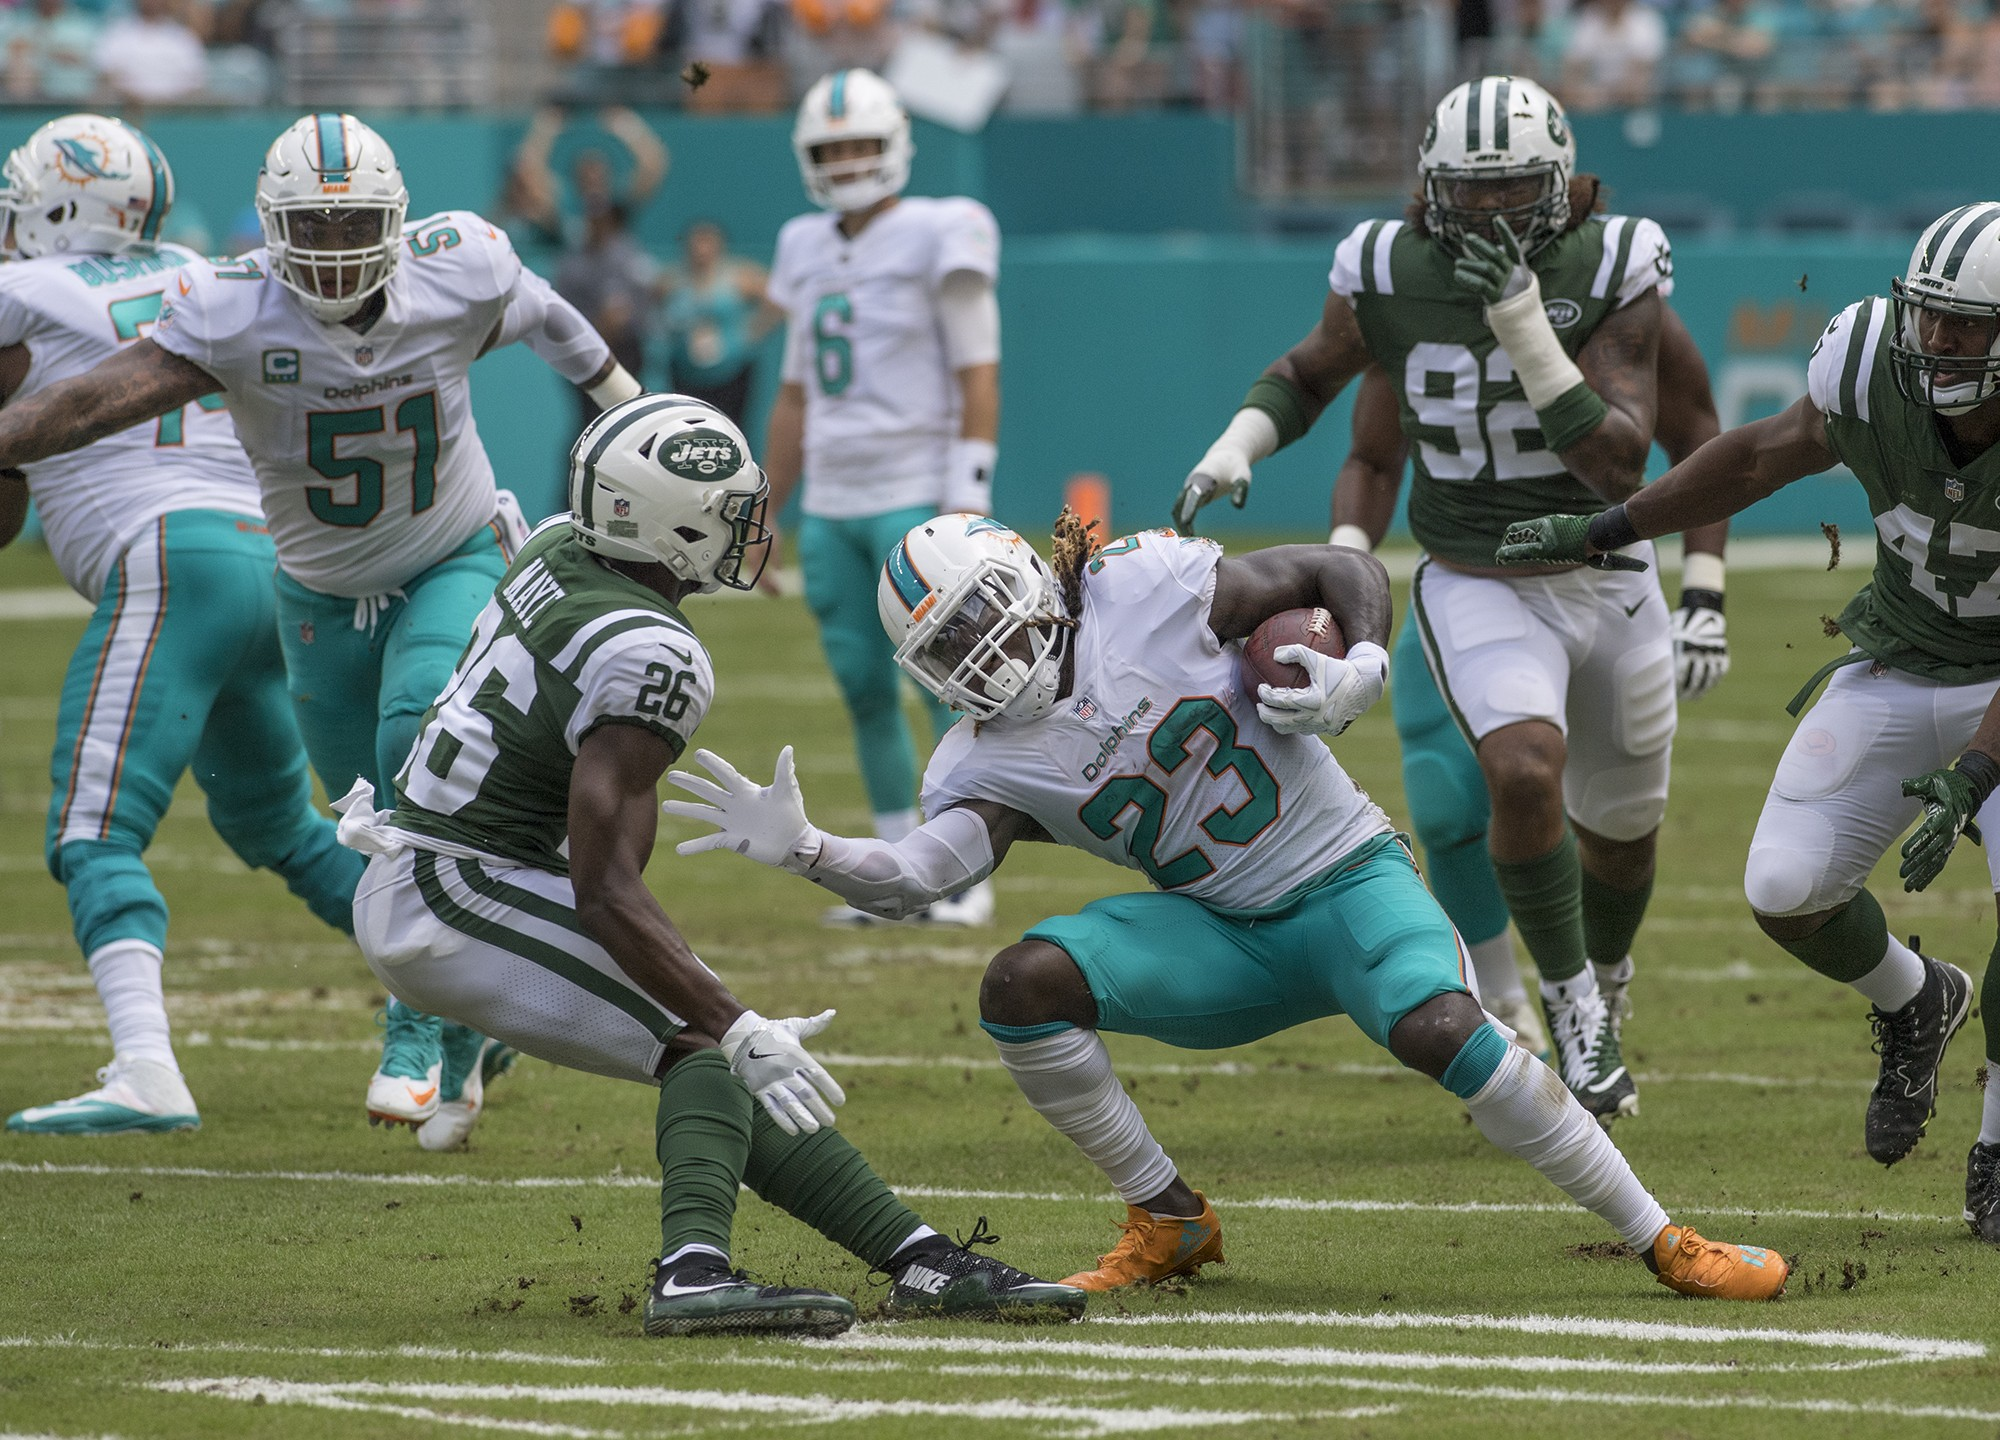 Miami Dolphins running back Jay Ajayi (23) makes a cut as New York Jets free safety Marcus Maye (26) defends the play during 1st half play of an NFL football game on Sunday, Oct. 22, 2017, in Miami Gardens, Fla. The Miami Dolphins went on to defeat the New York Jets 31-28.(Donald Edgar/El Latino Digital)